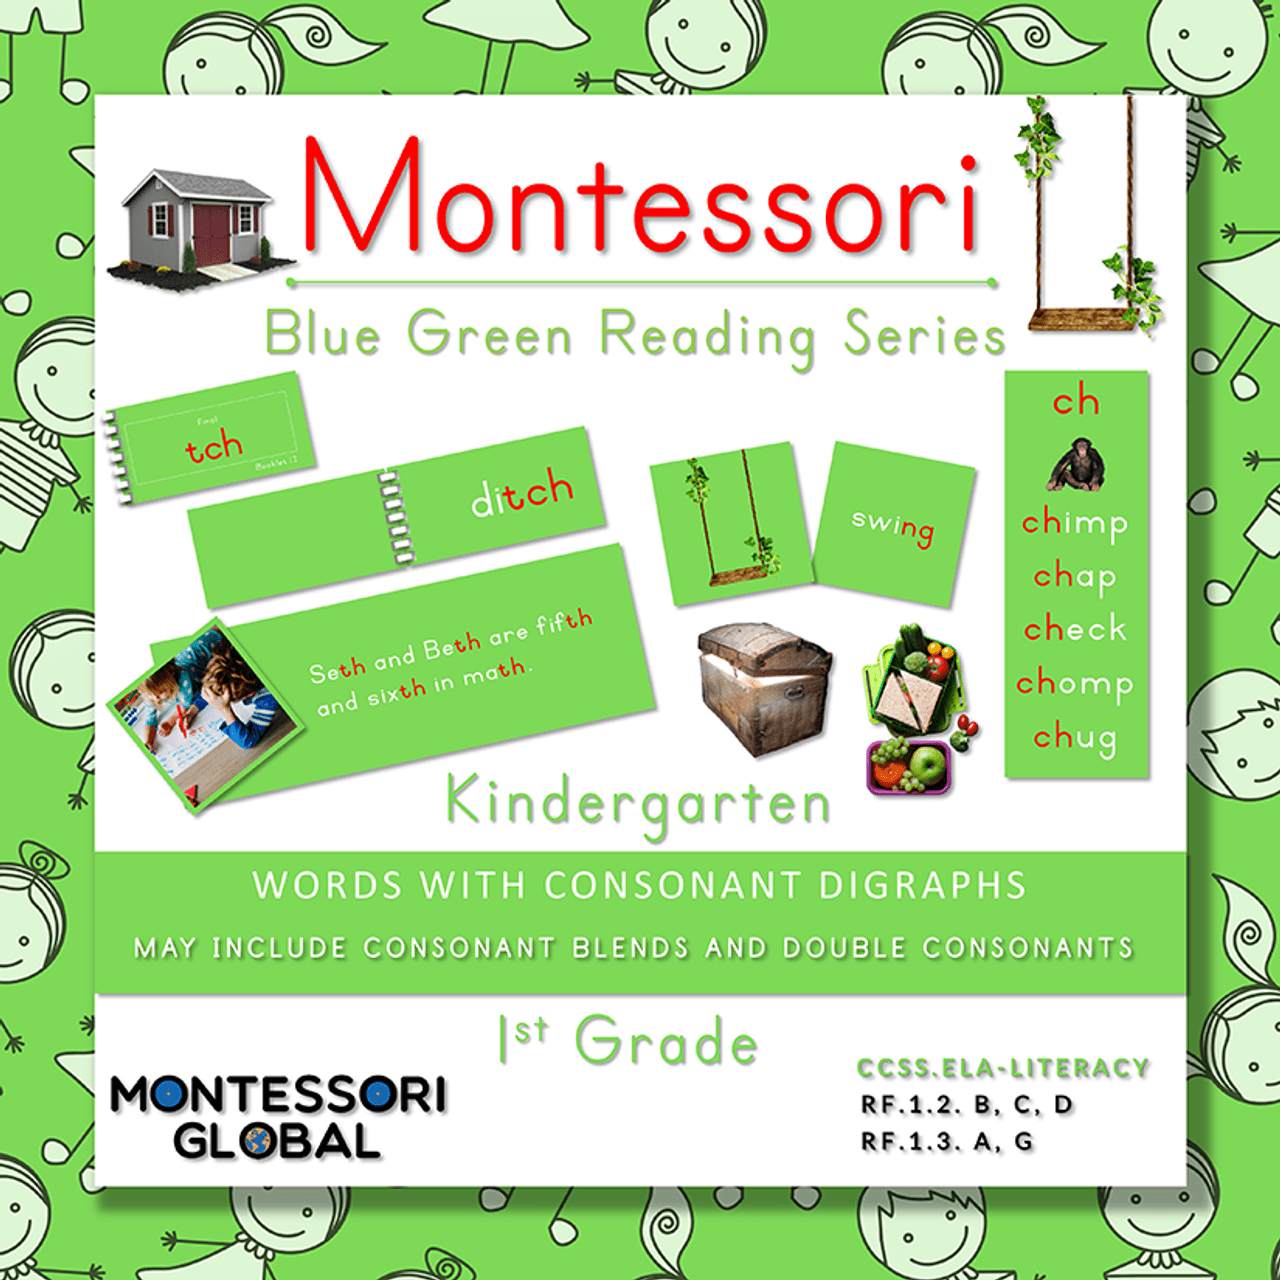 hight resolution of Montessori Blue Green Reading Series - Consonant Blends